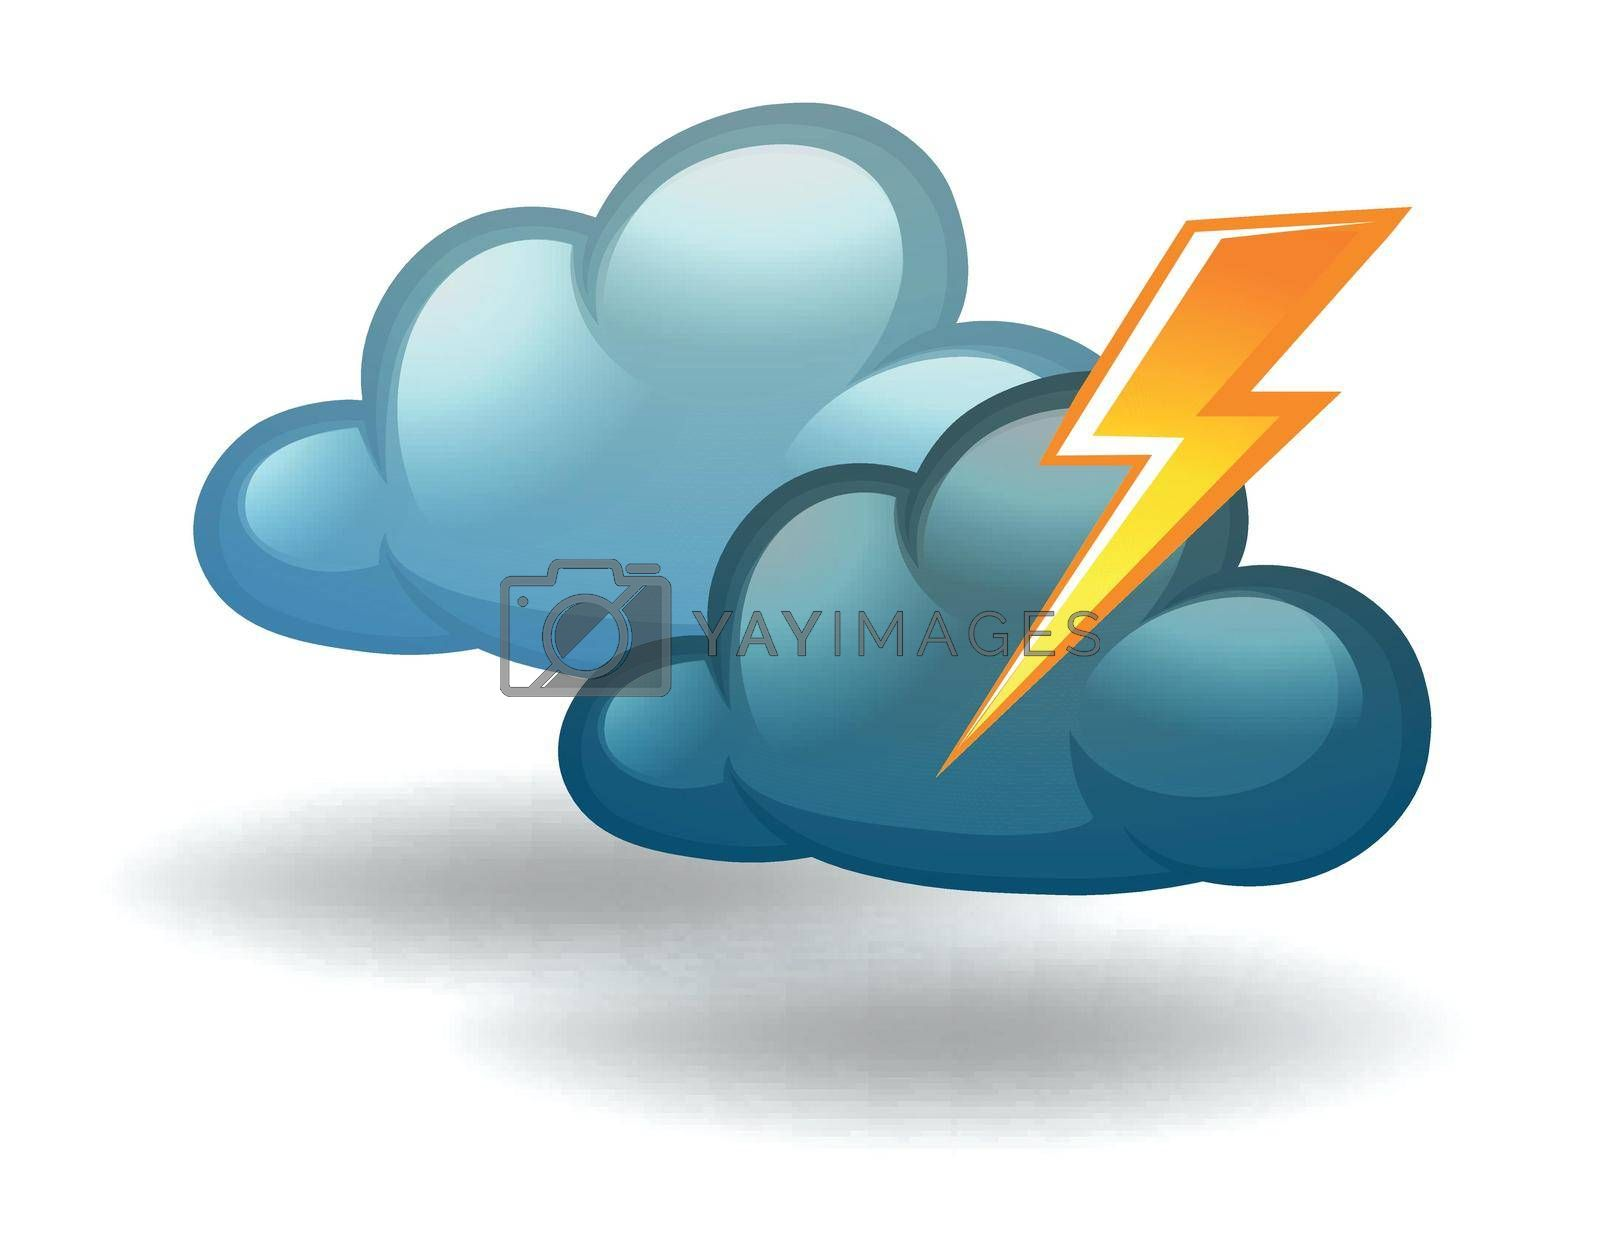 Royalty free image of A weather with thunder by iimages